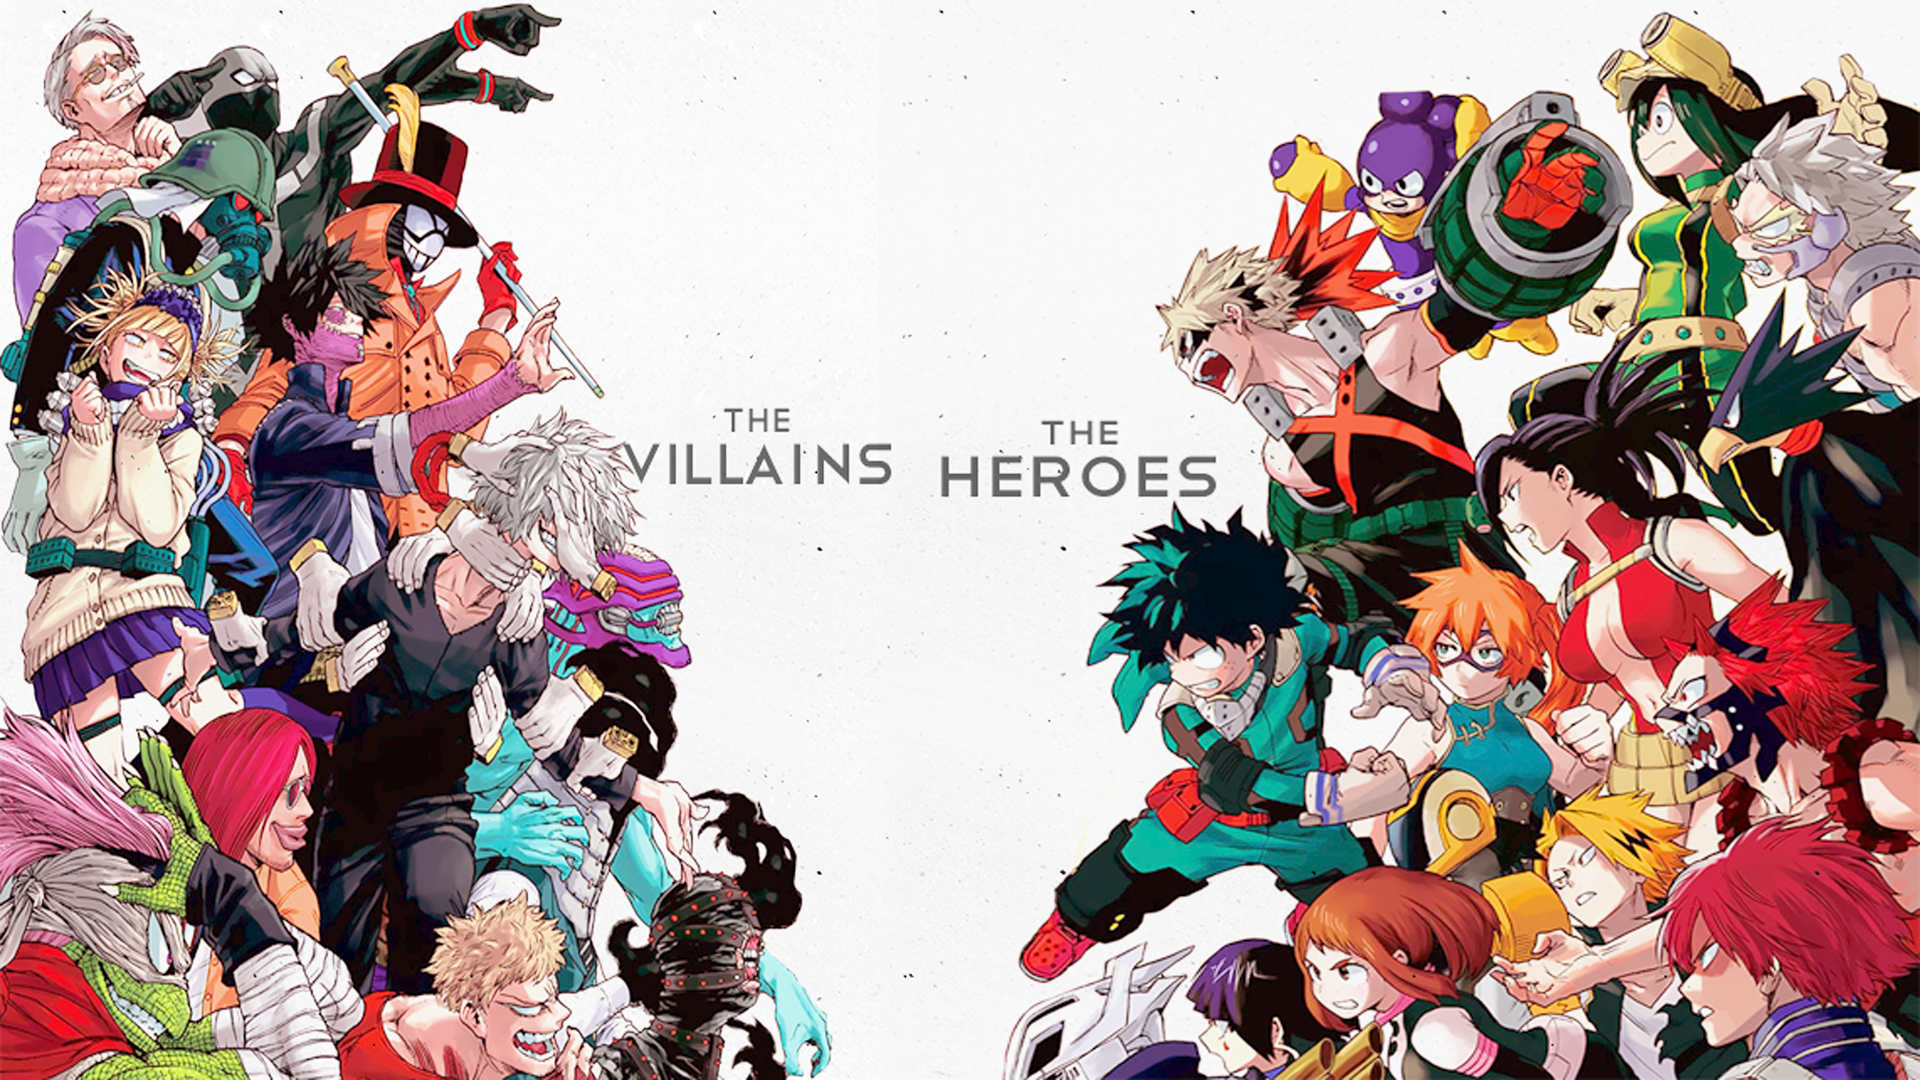 [BNHA] Can someone remove the text? Please and thank you